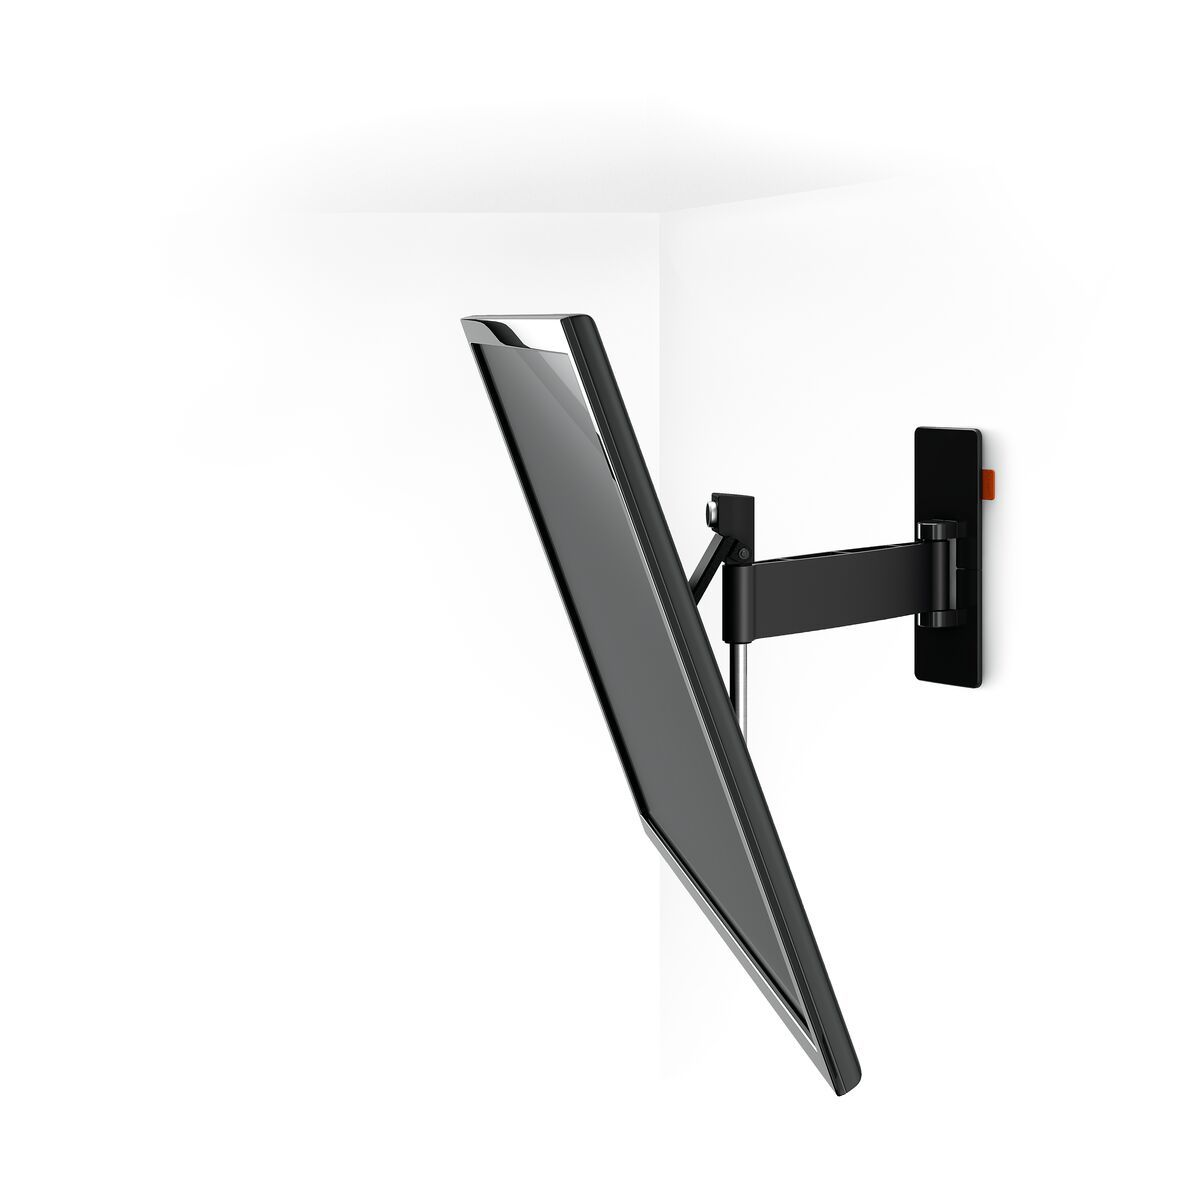 Vogel's WALL 2325 Full-Motion TV Wall Mount (black) - Suitable for 40 up to 65 inch TVs - Motion (up to 120°) - Tilt up to 20° - Detail